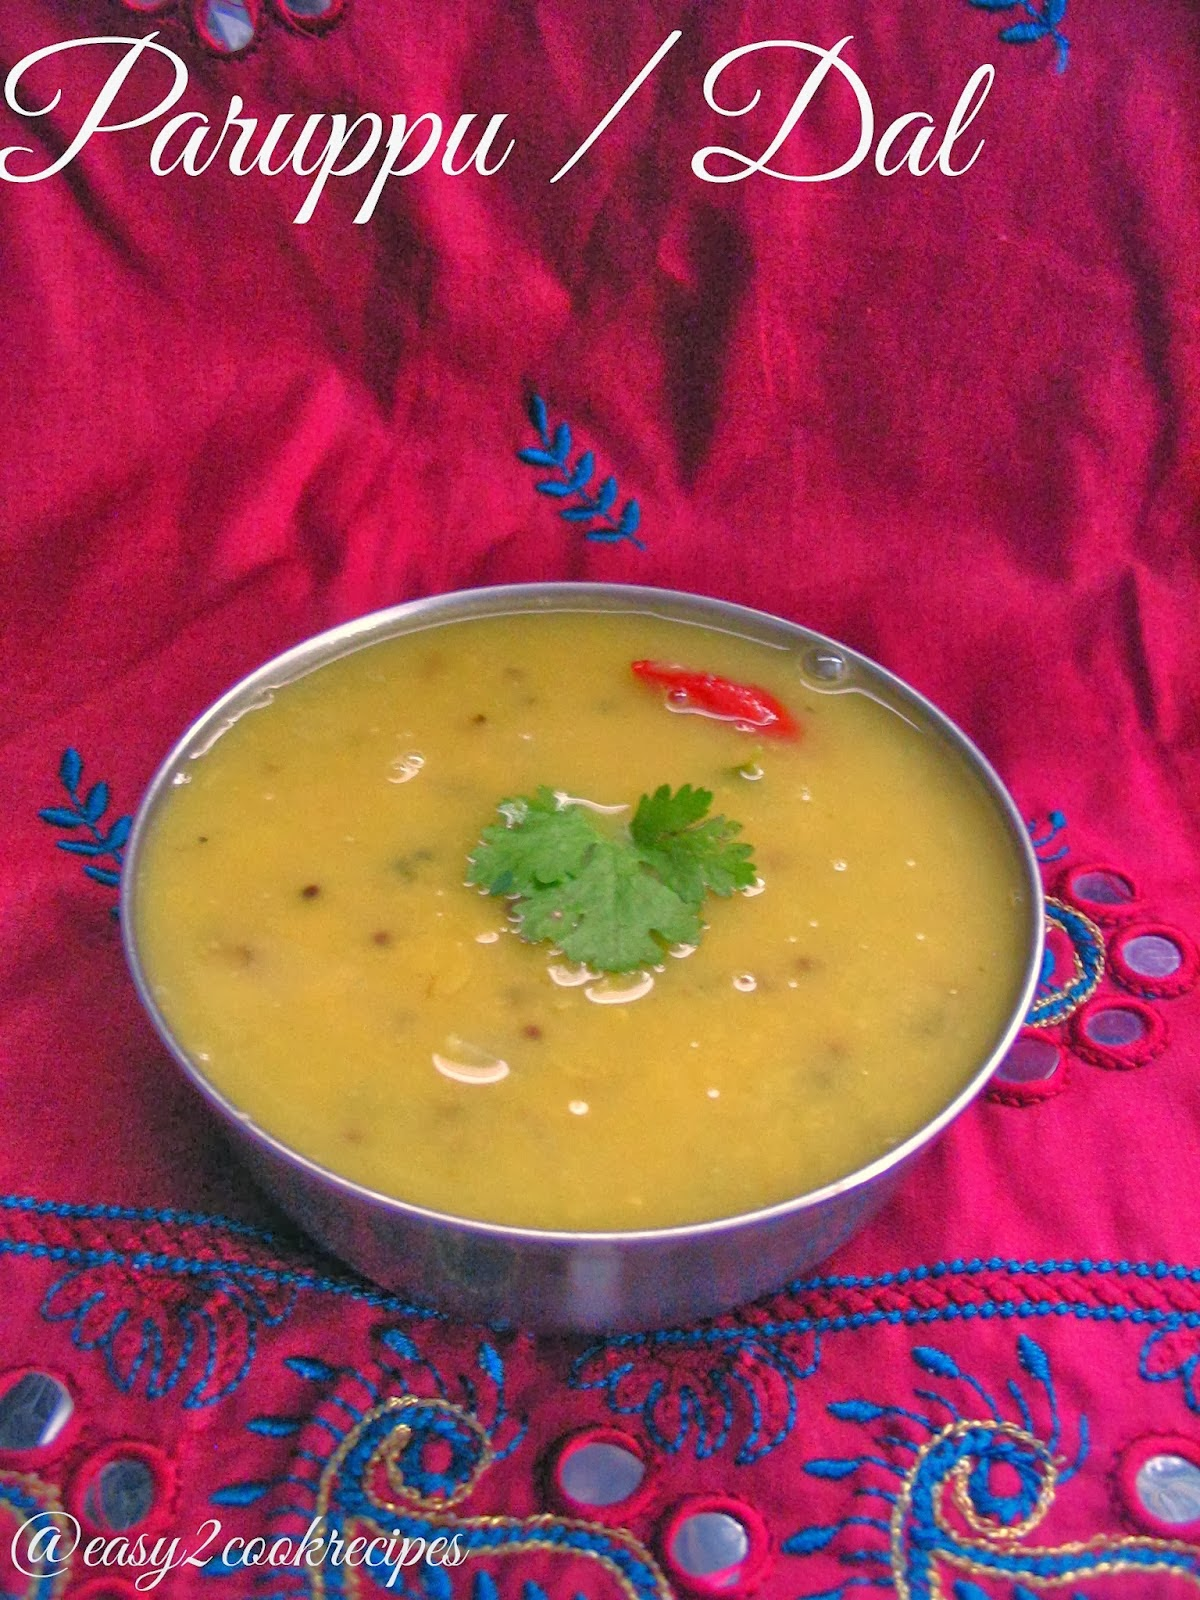 http://easy2cookrecipes.blogspot.in/2014/01/paruppu-dal-tamilnadu-style.html